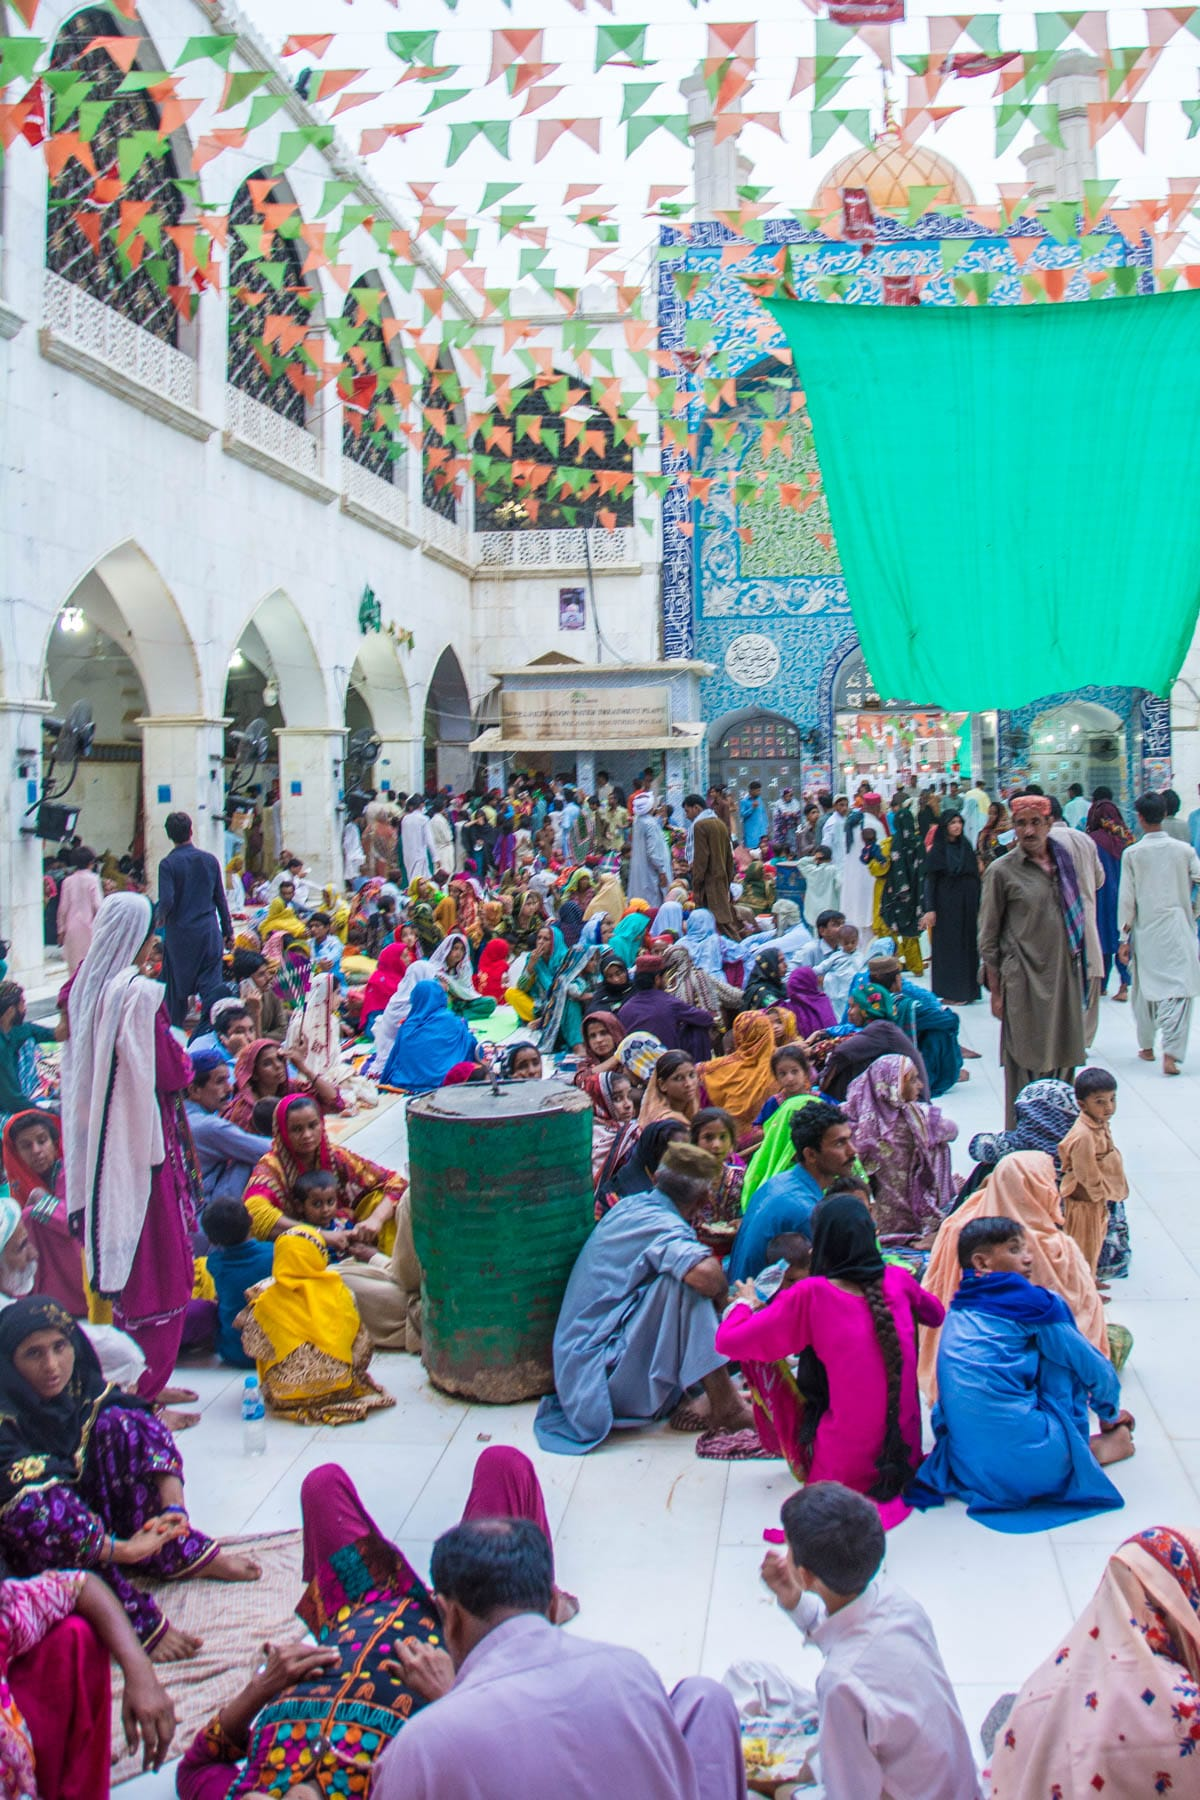 People gathering for iftar during Ramadan at the Lal Shahbaz Qalandar shrine in Sehwan, Pakistan